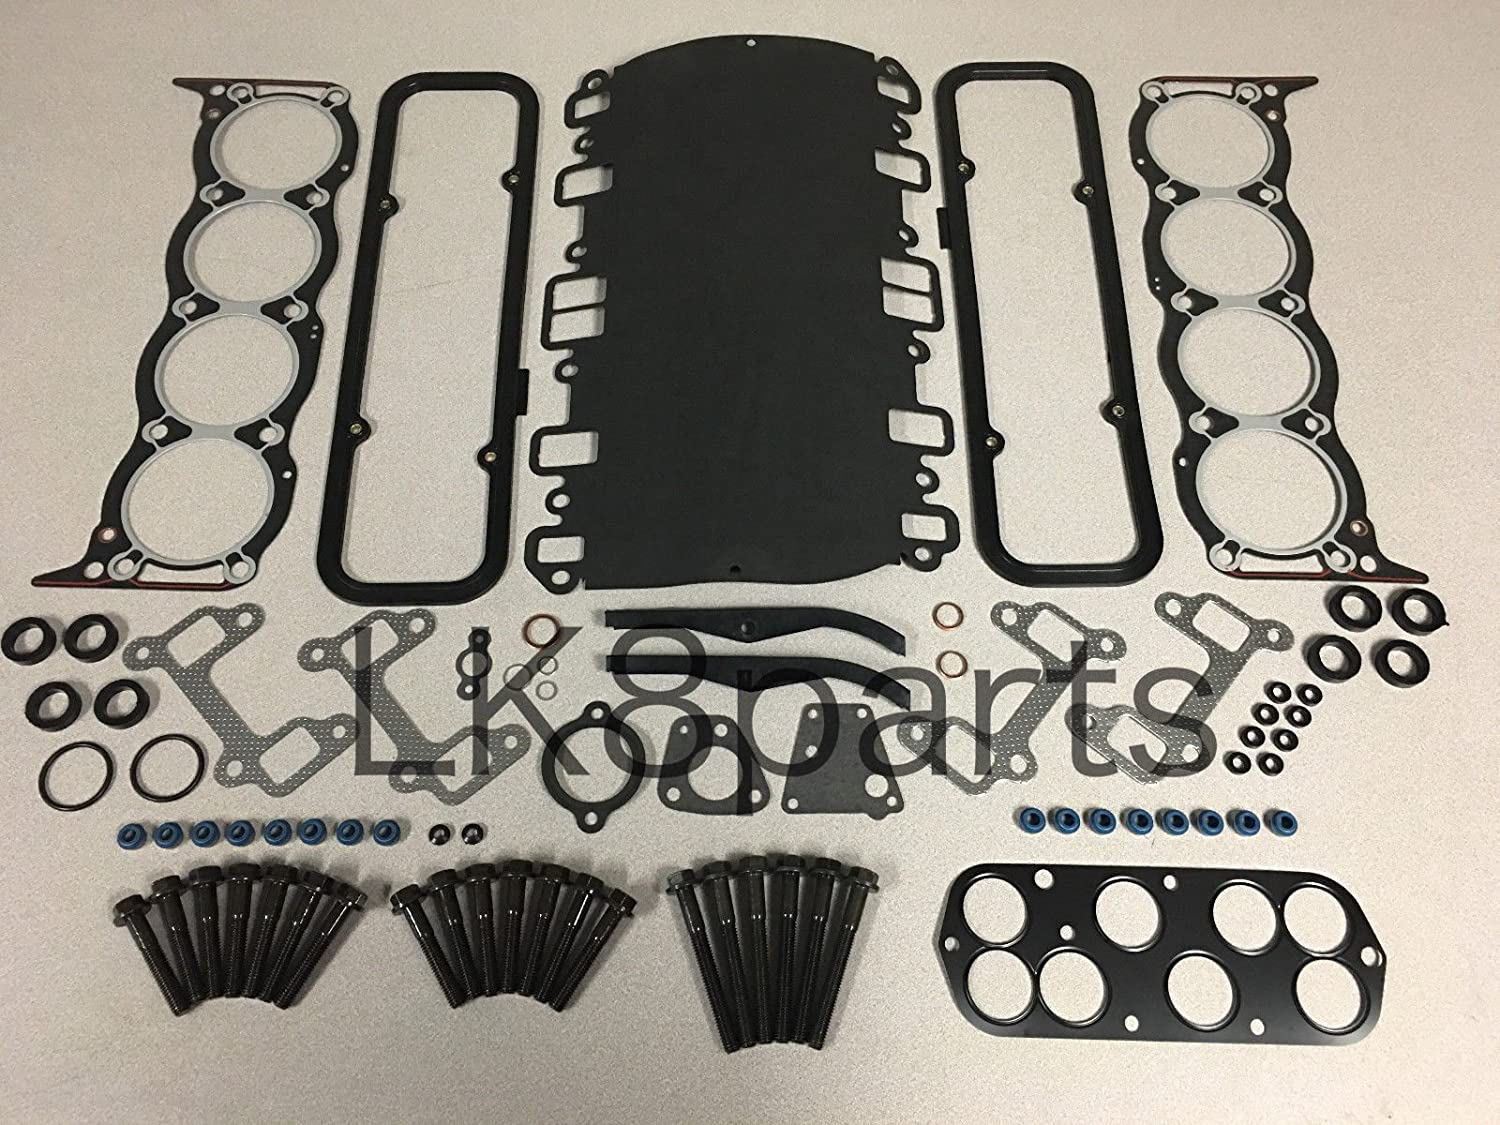 Land Rover Discovery 2 1999-2004 v8 Head Gasket Set With Head Bolts STC4082